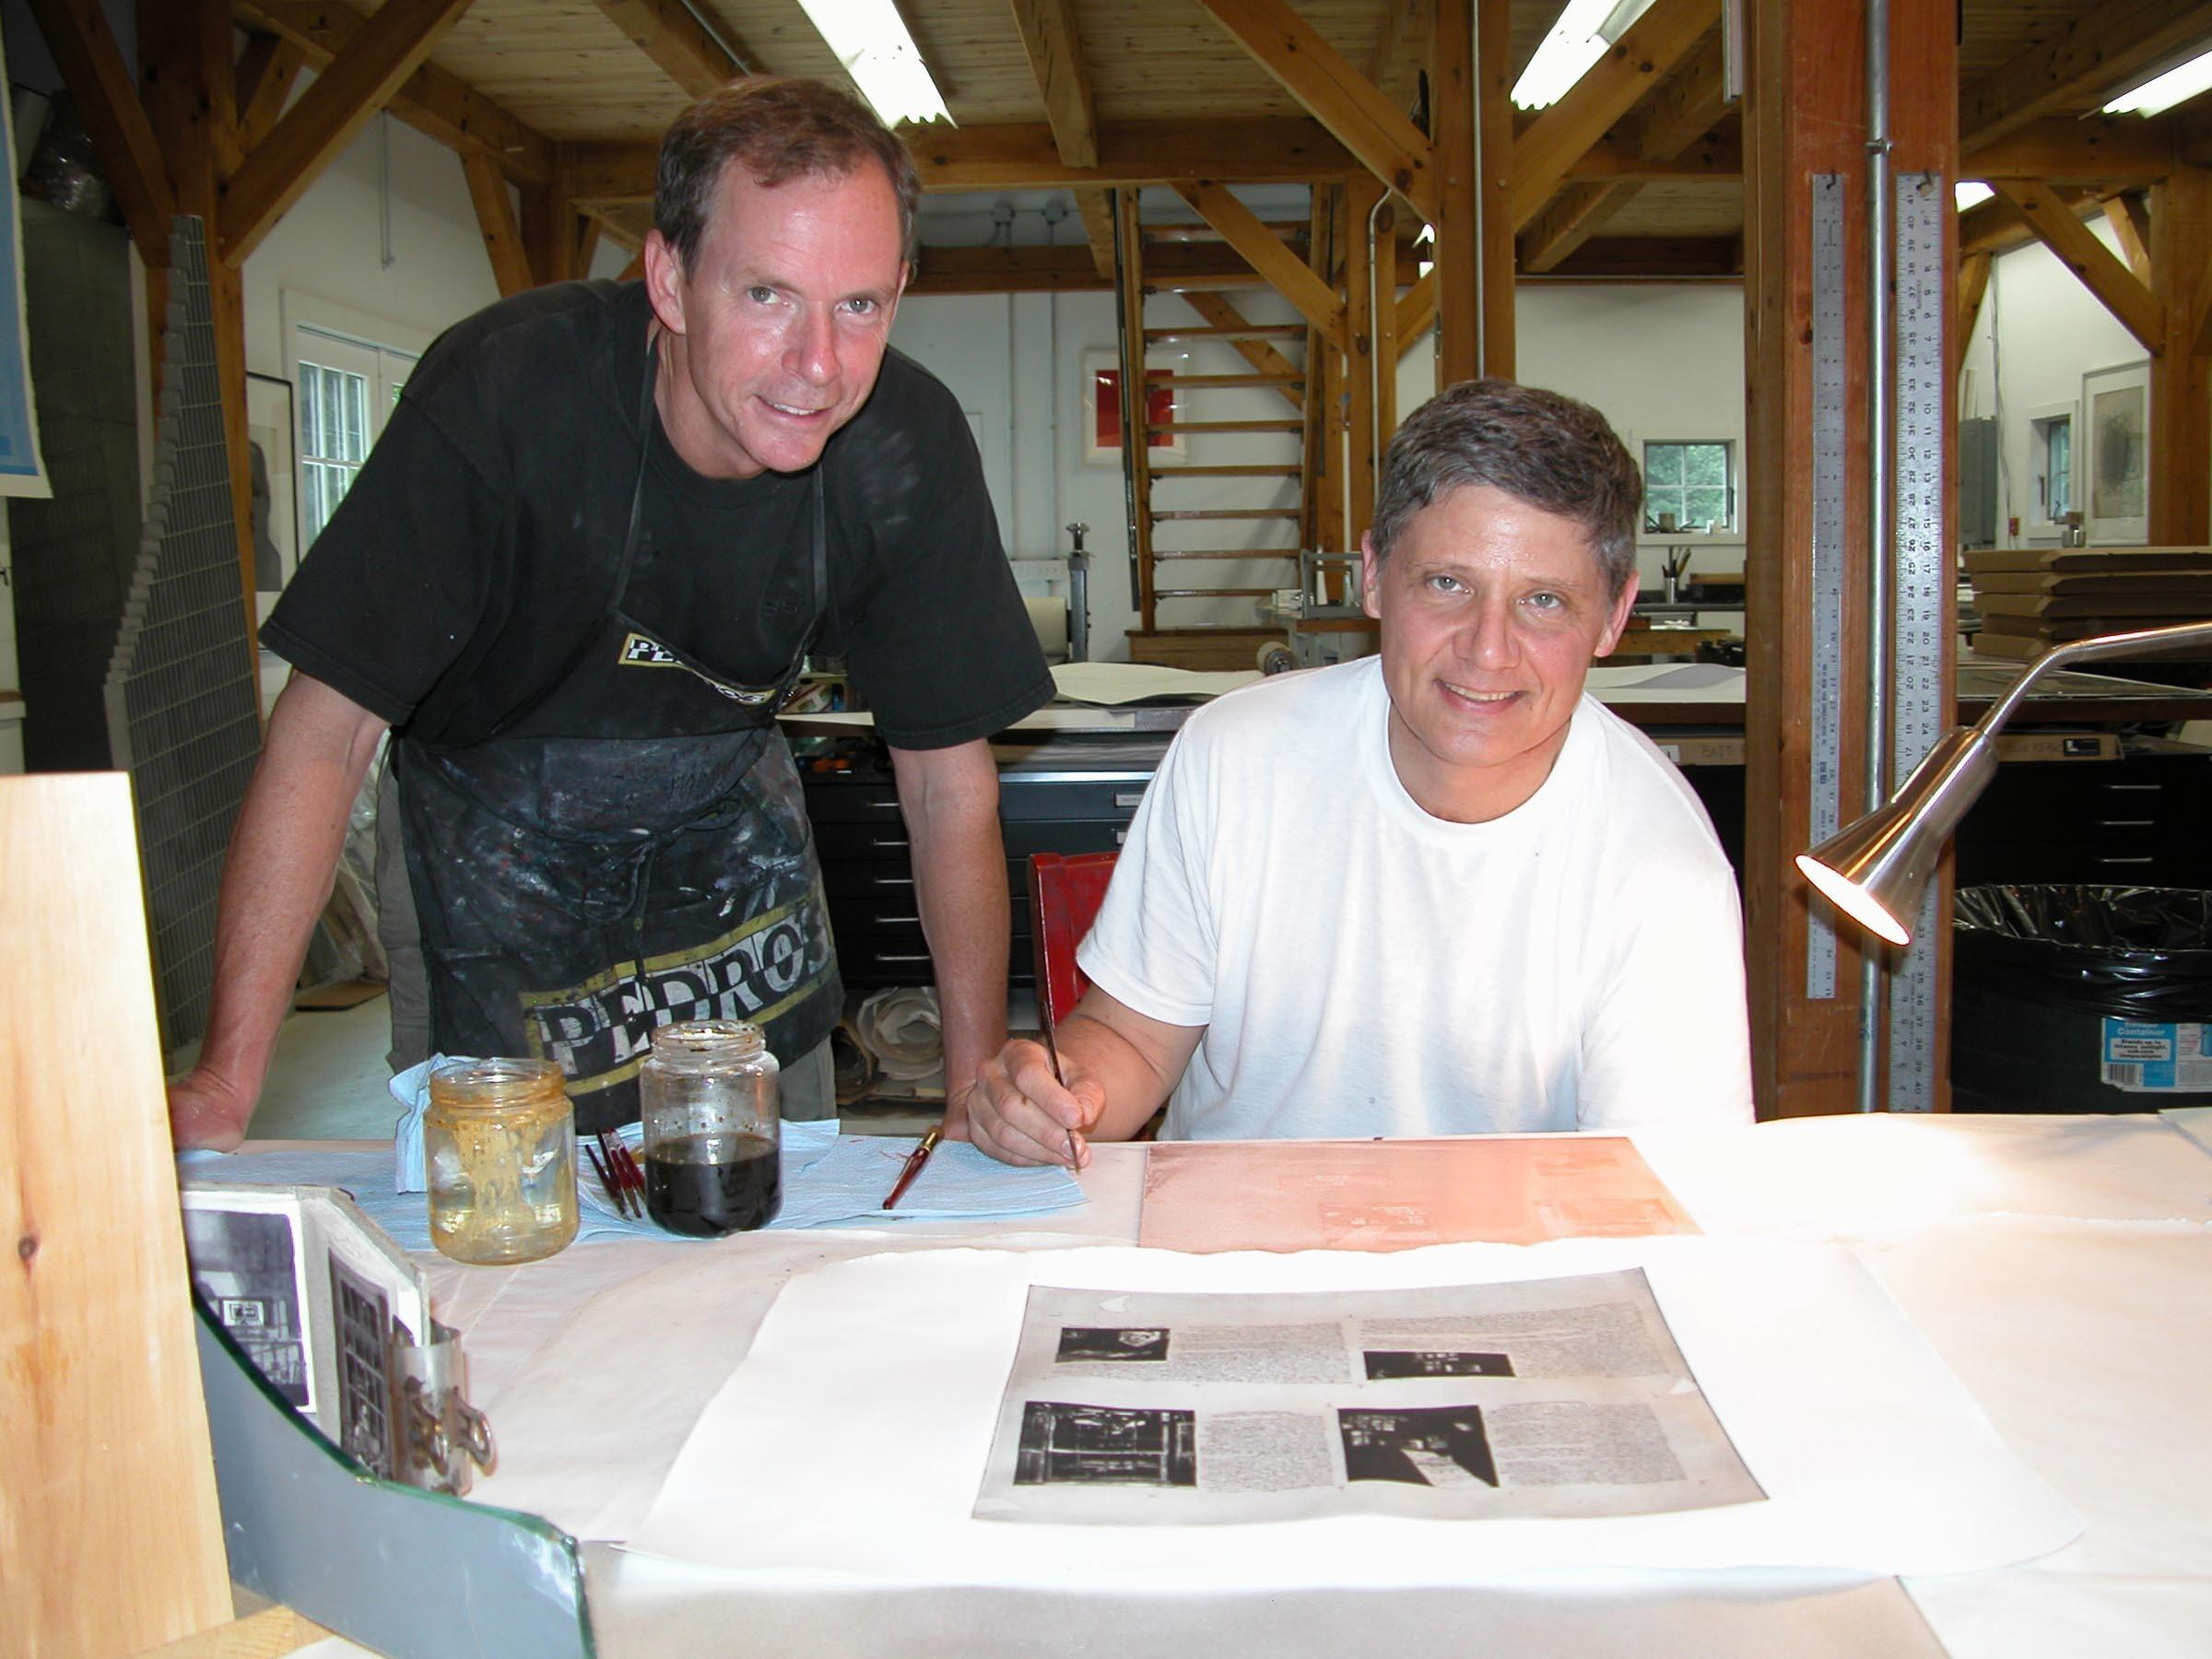 Photograph of James Stroud and Charles Ritchie at Center Street Studio, Milton, MA in May 2008 image